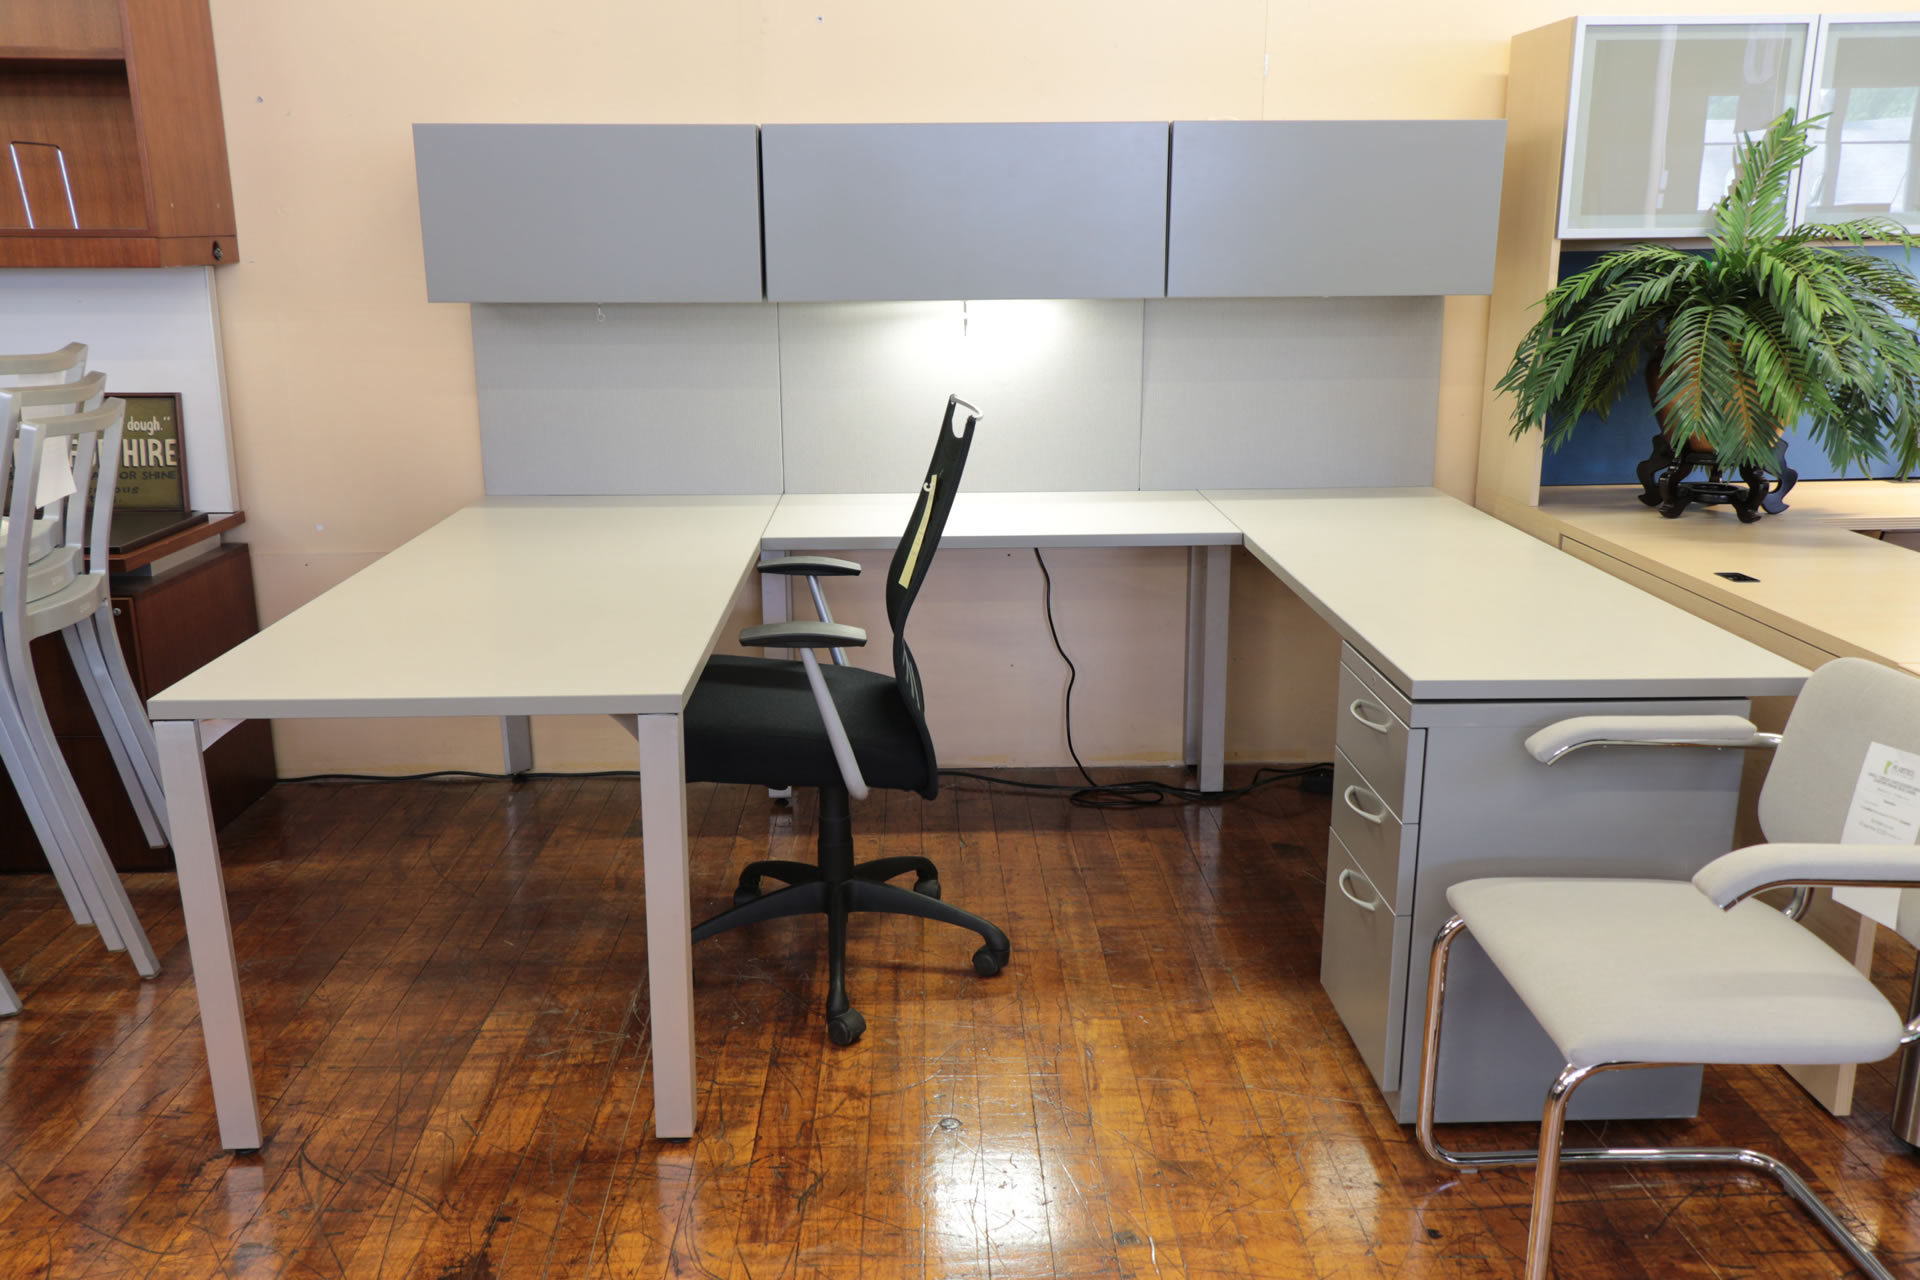 peartreeofficefurniture_peartreeofficefurniture_peartreeofficefurniture_2015-06-24_20-20-46.jpg